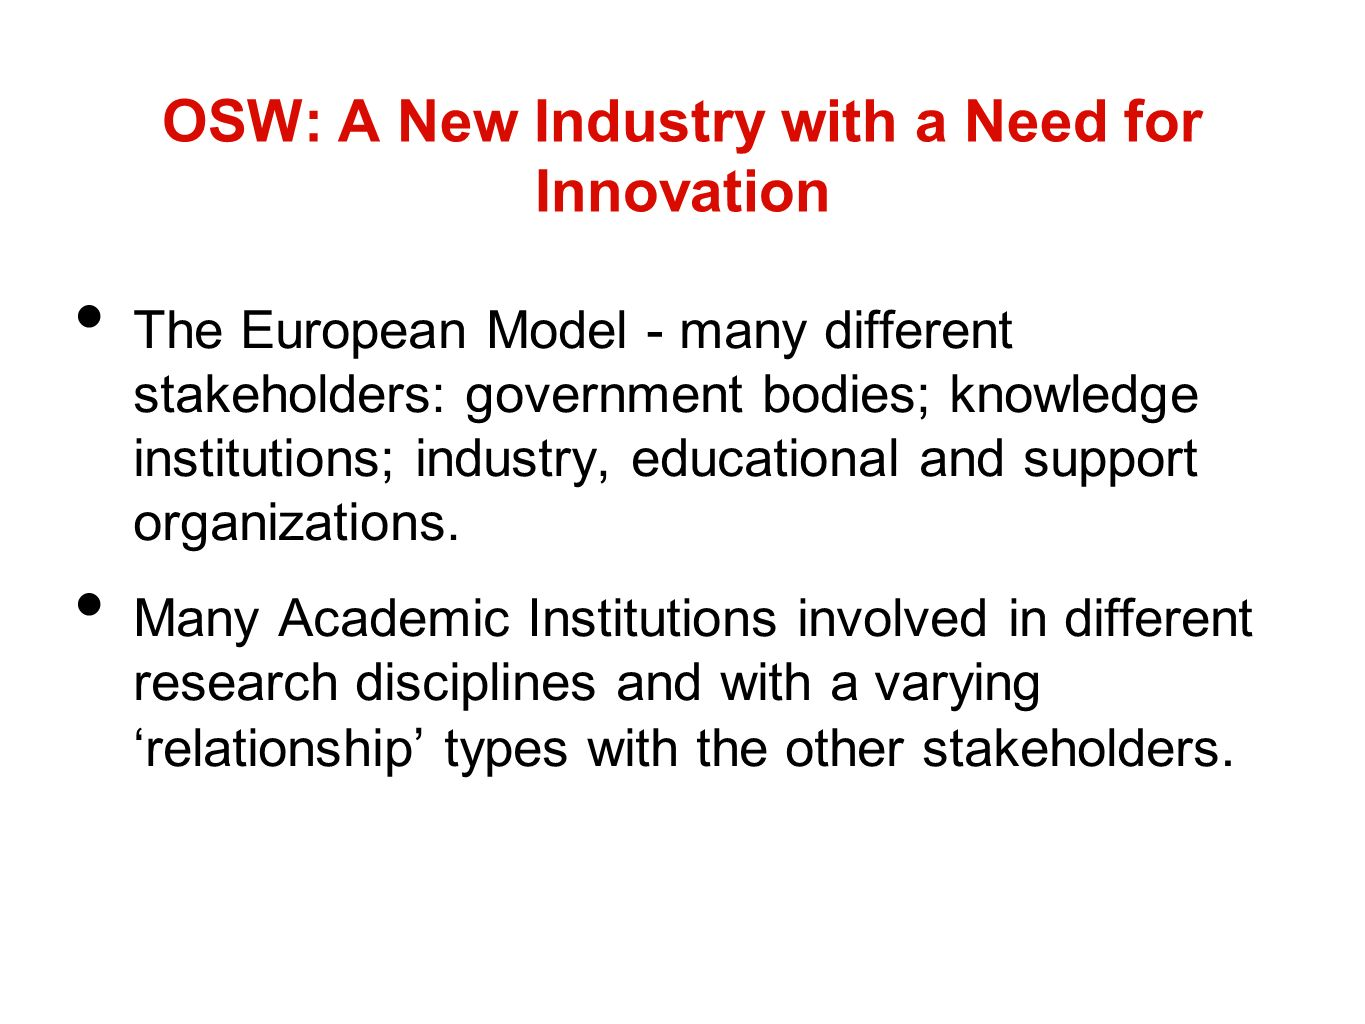 OSW: A New Industry with a Need for Innovation The European Model - many different stakeholders: government bodies; knowledge institutions; industry, educational and support organizations.